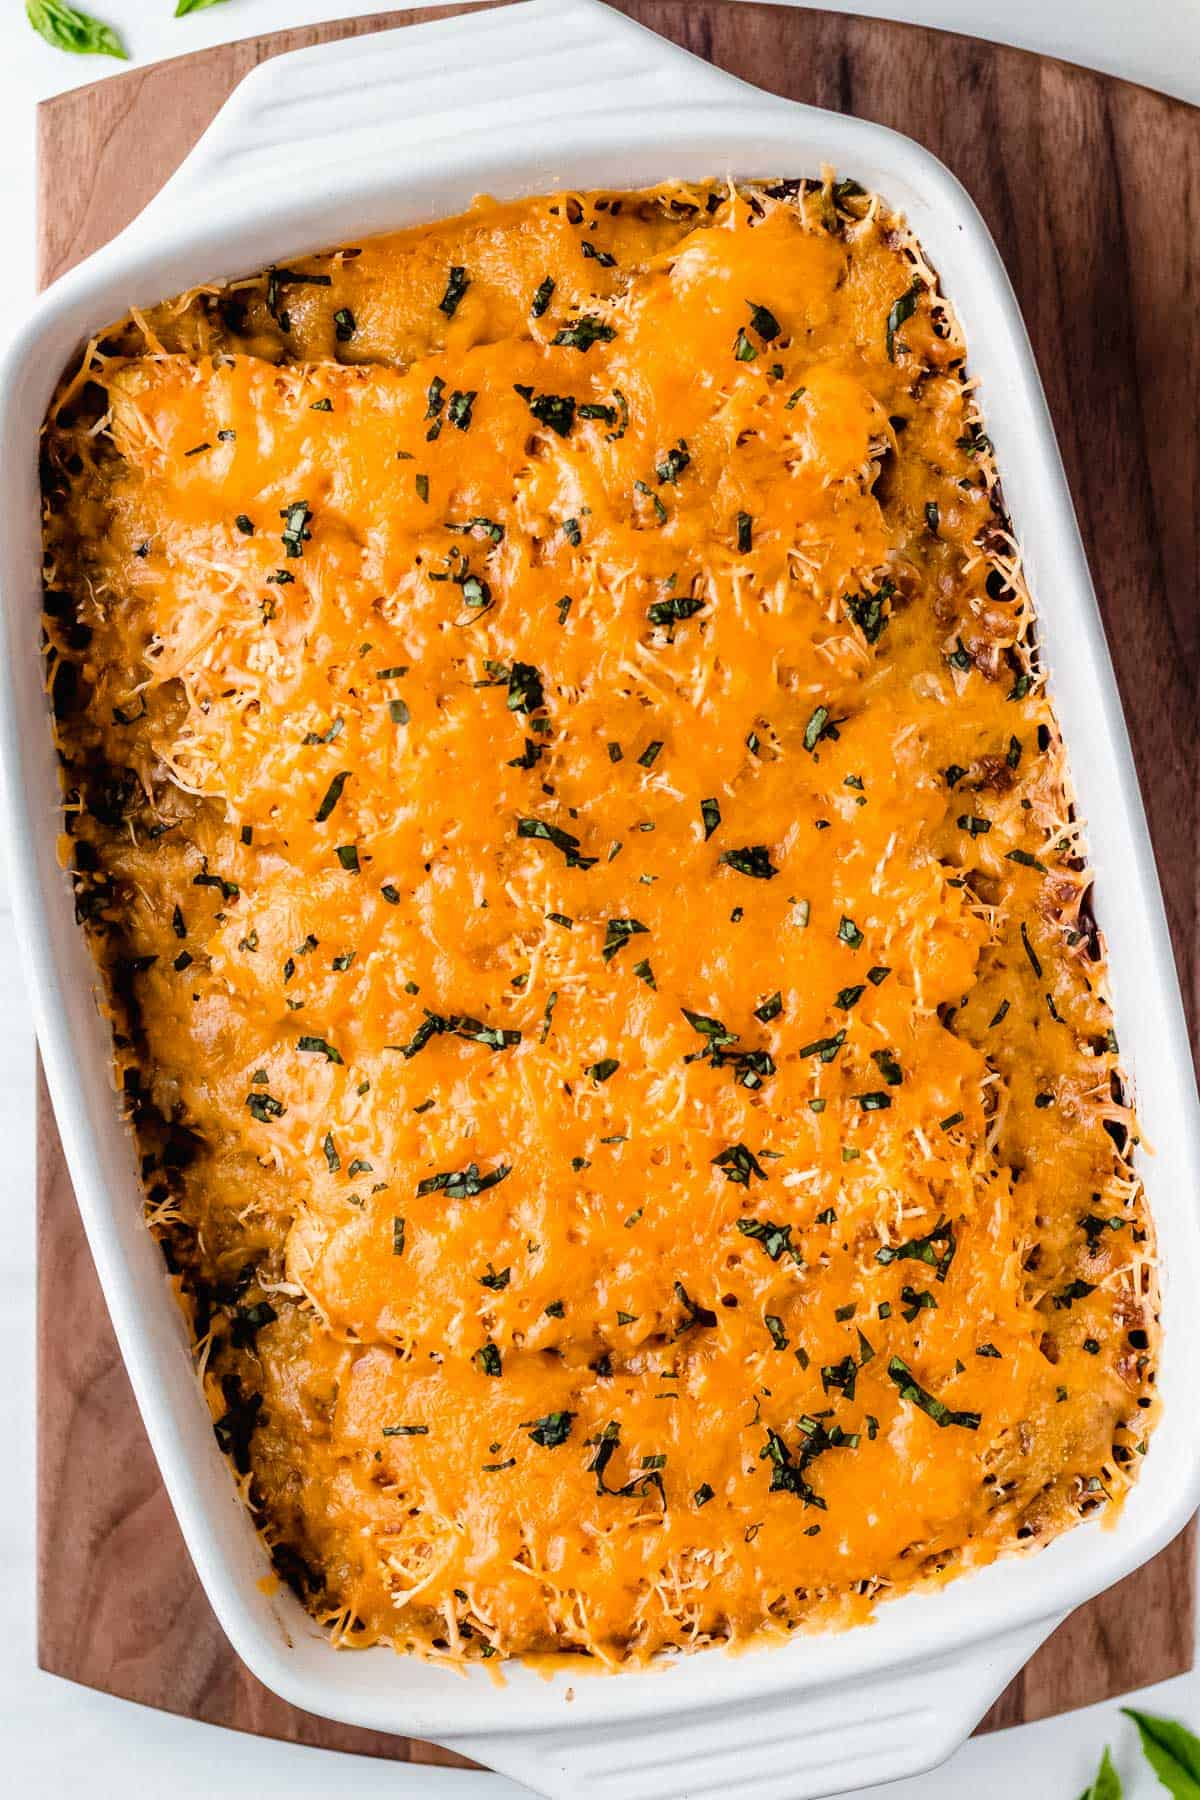 Baked sweet plantain lasagna in a rectangular casserole dish over a wood board